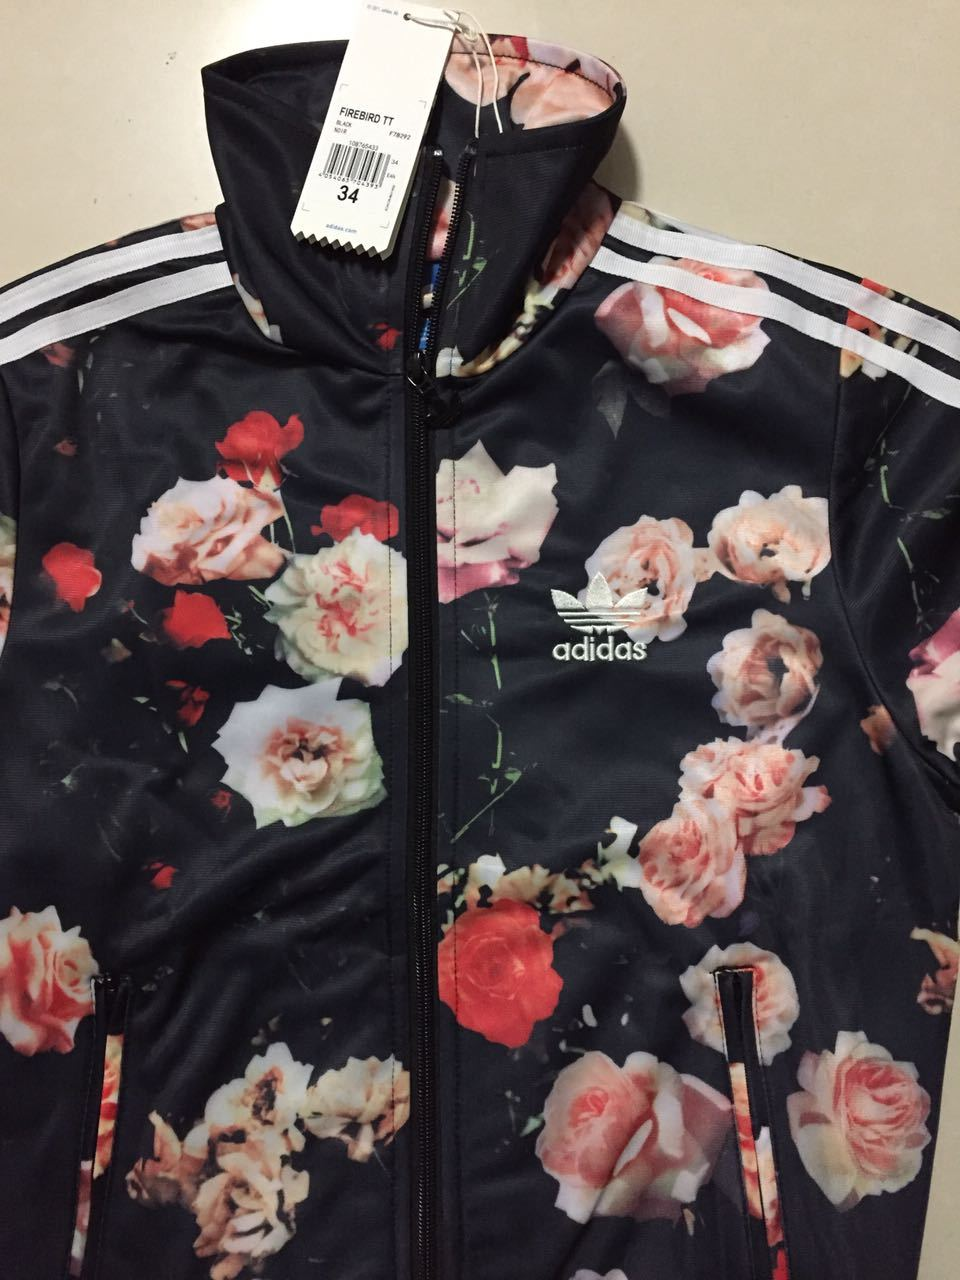 e81a66bf564 New Adidas Firebird Track Top Floral Roses Jacket sweater for women s F78292